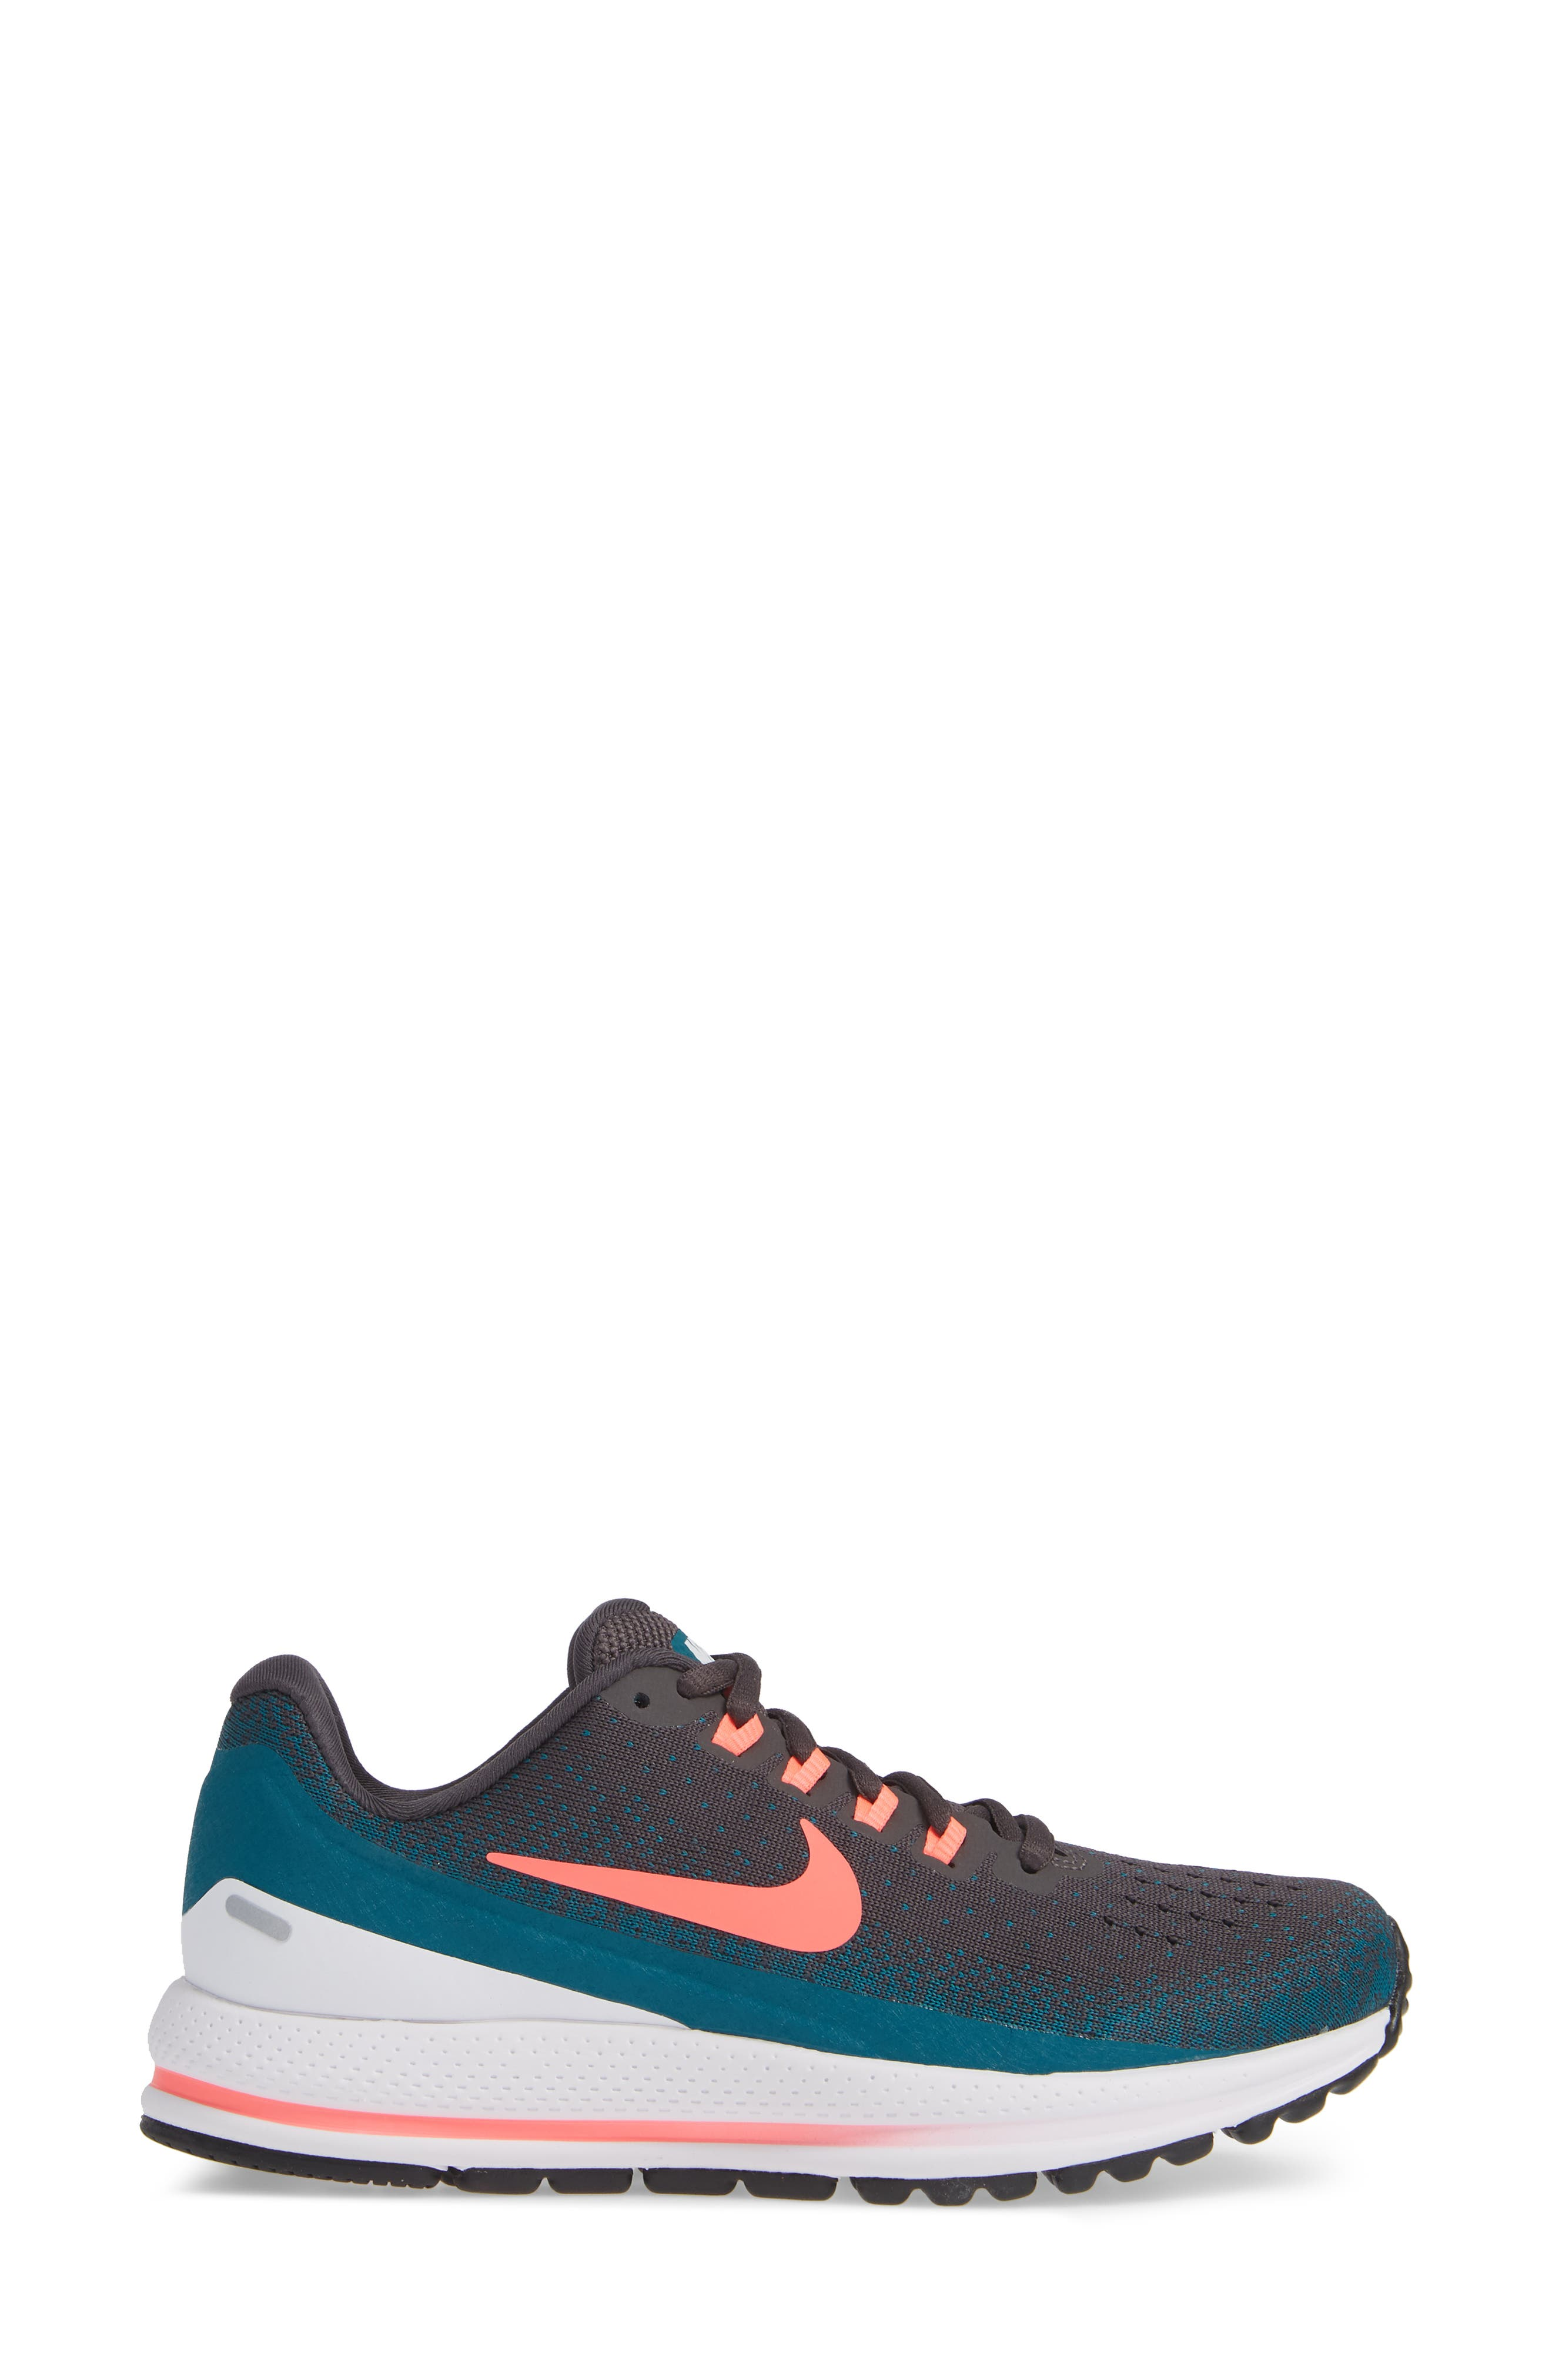 Air Zoom Vomero 13 Running Shoe,                             Alternate thumbnail 19, color,